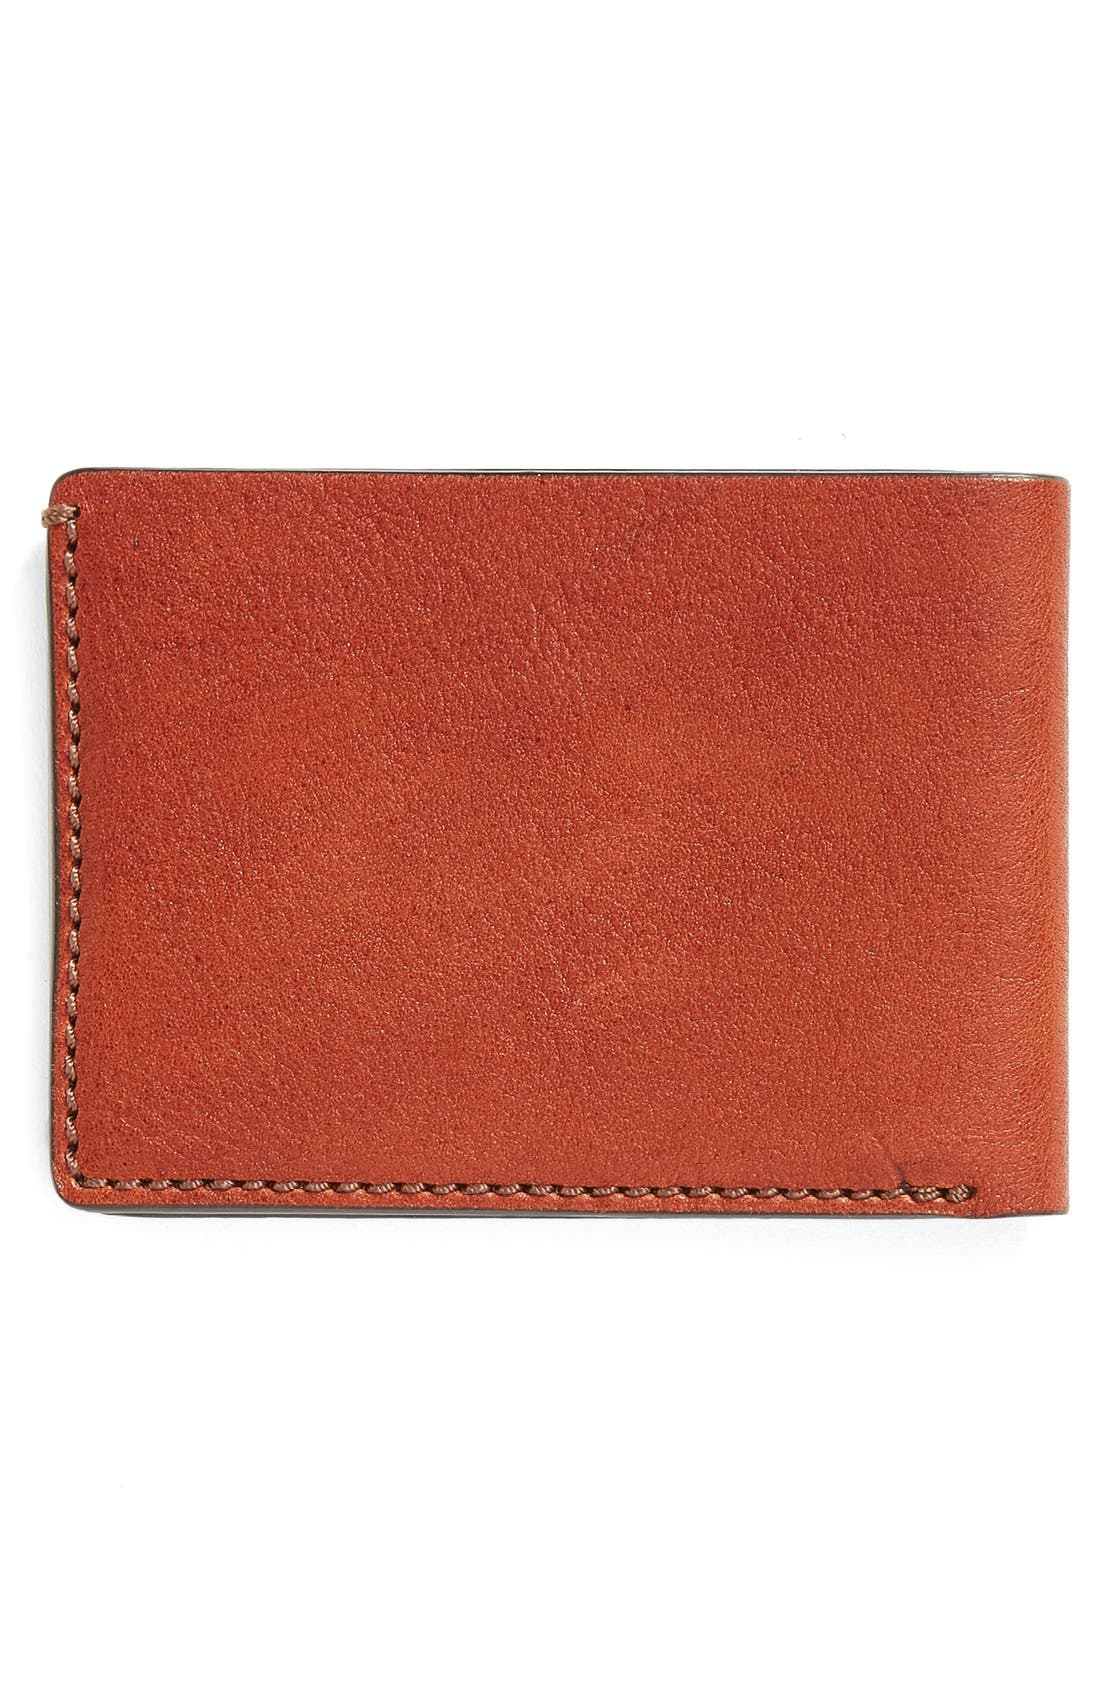 Leather Bifold Wallet,                             Alternate thumbnail 3, color,                             200